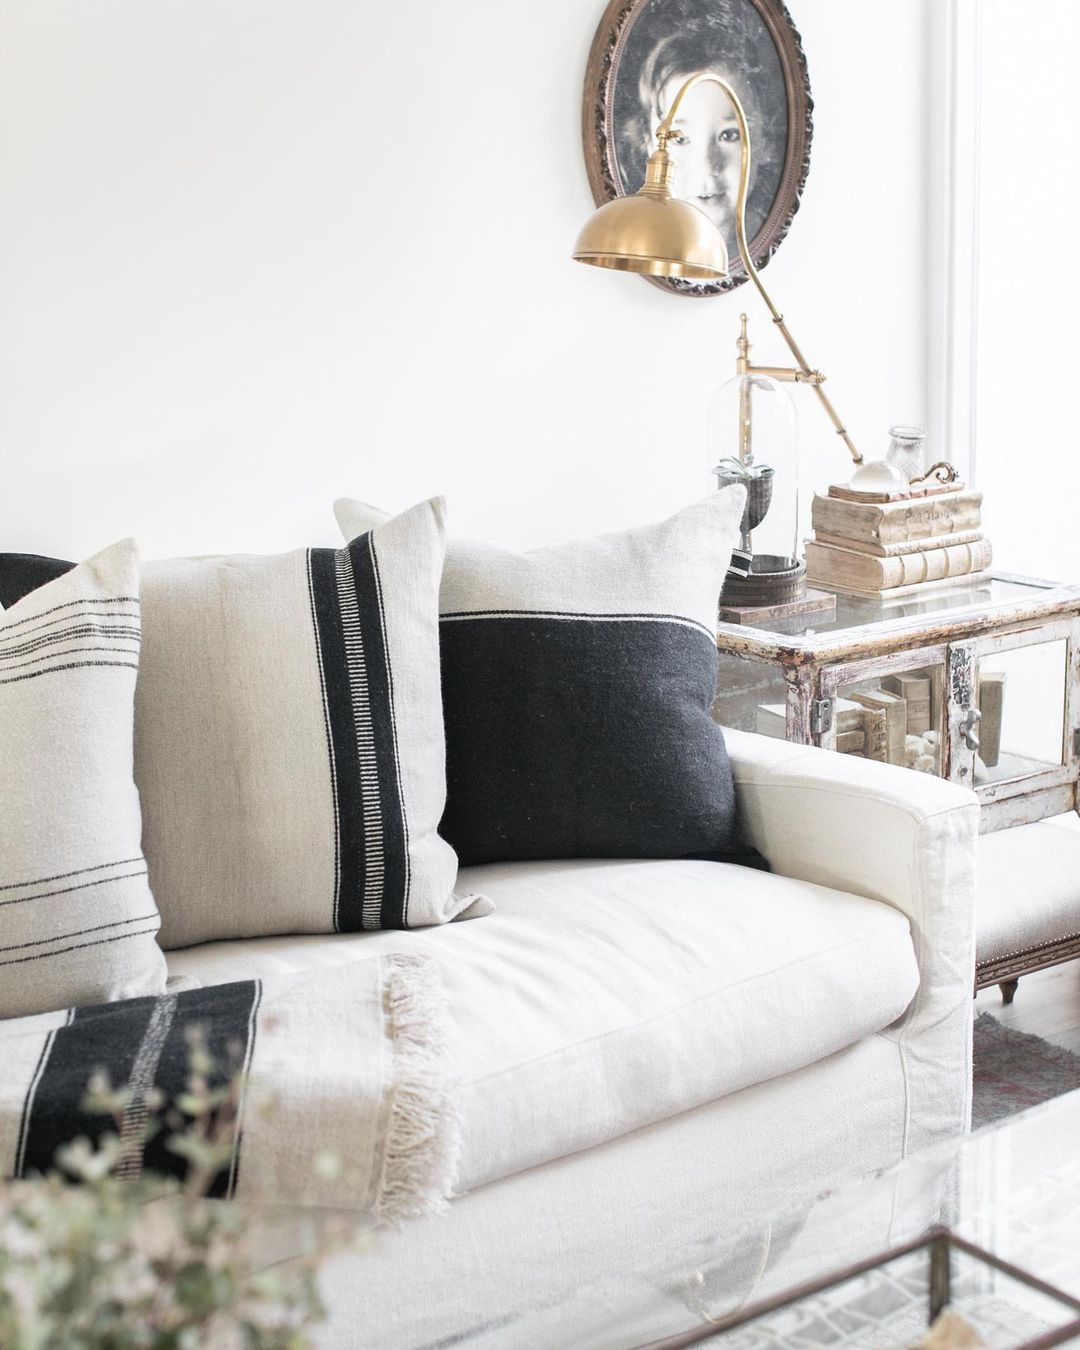 Detail of a linen Belgian style sofa with black accents on pillows in a modern rustic living room with design by @beautifulmesshome. #modernrustic #livingroom #belgianstyle